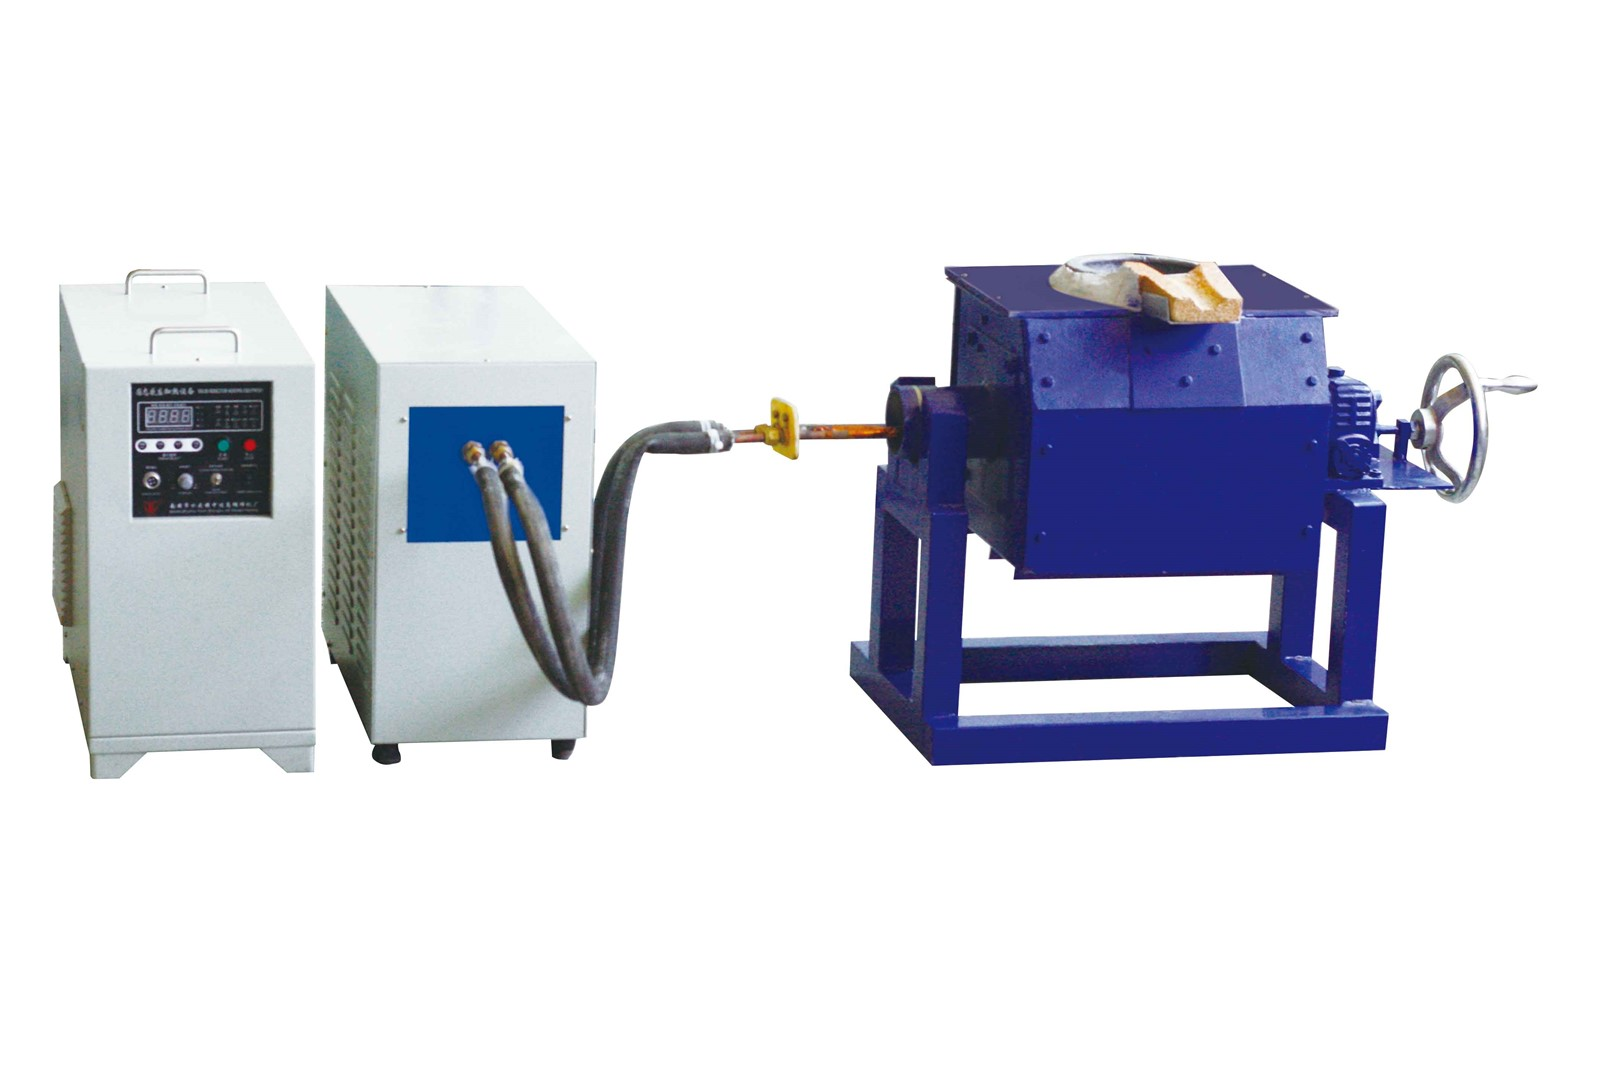 Crucible melting furnace induction melting furnace